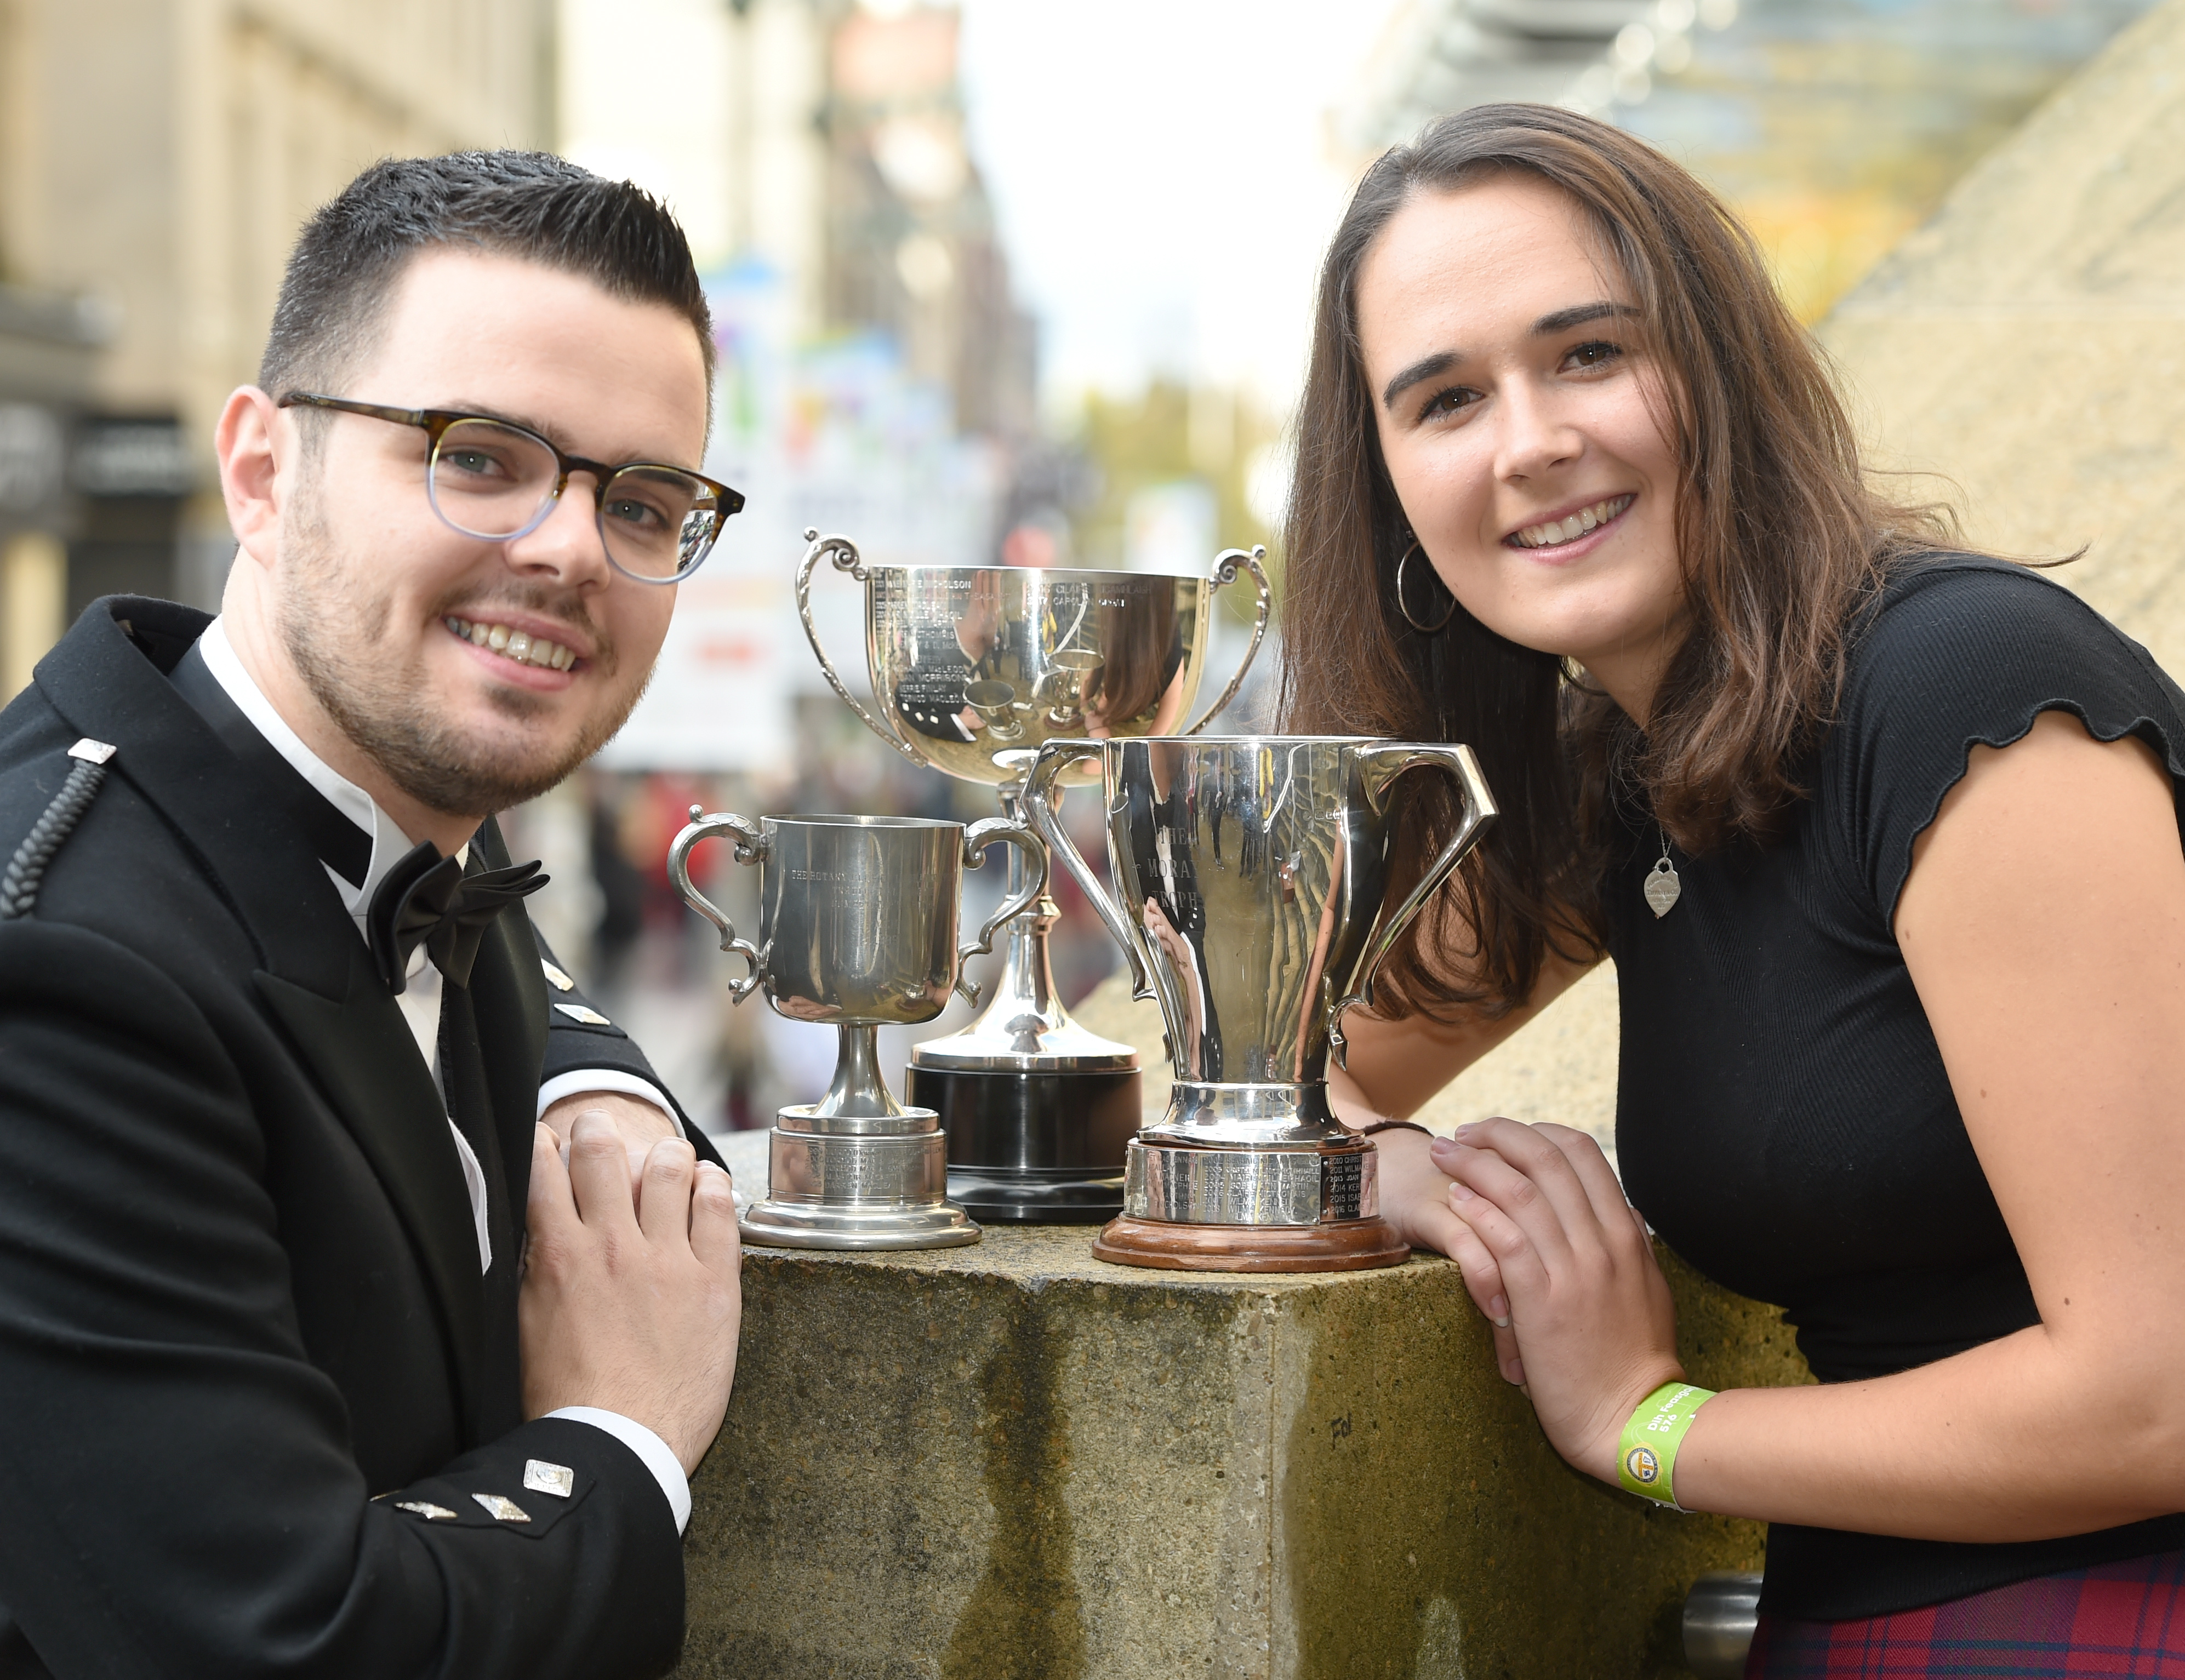 Isabelle Bain of Back in Lewis, winner of the Moray Trophy for traditional singing and ALasdair Iain MacPhee of Glasgow with the Rotary Club of Lochaber Trophy in the mens competition. They shared the Donald Murray Memorial Trophy for gaining the highest marks in their combined competitions. Picture by Sandy McCook